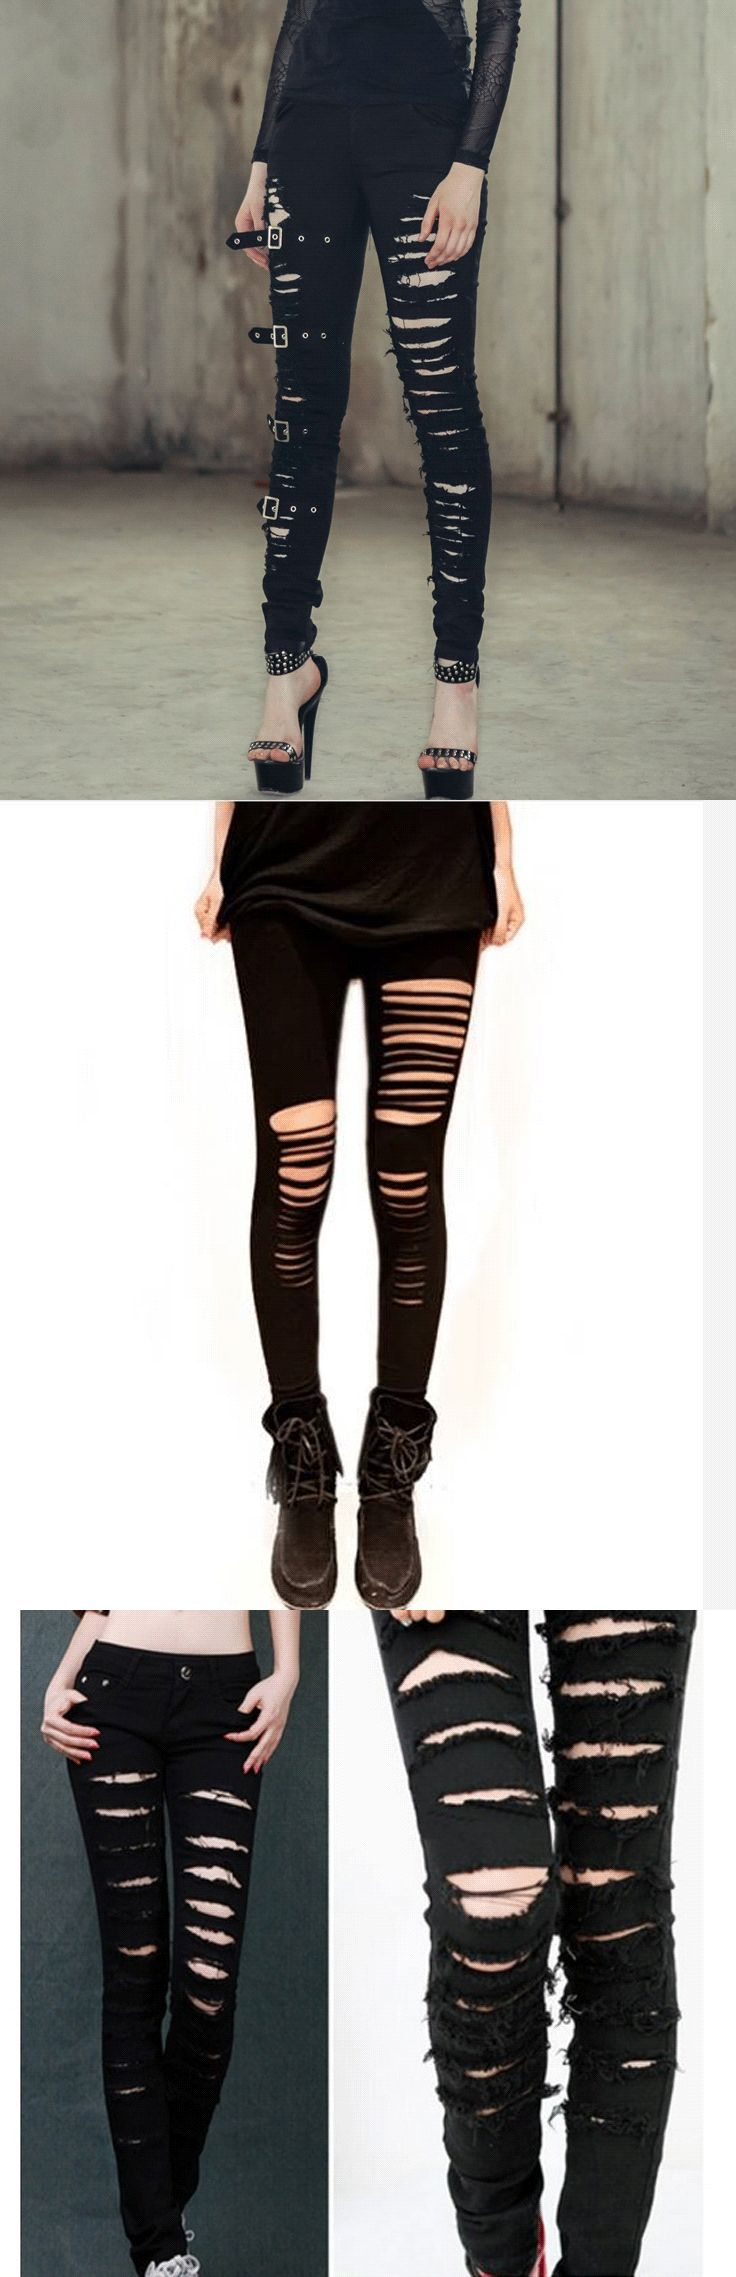 Shop cool ripped punk leggings at RebelsMarket!